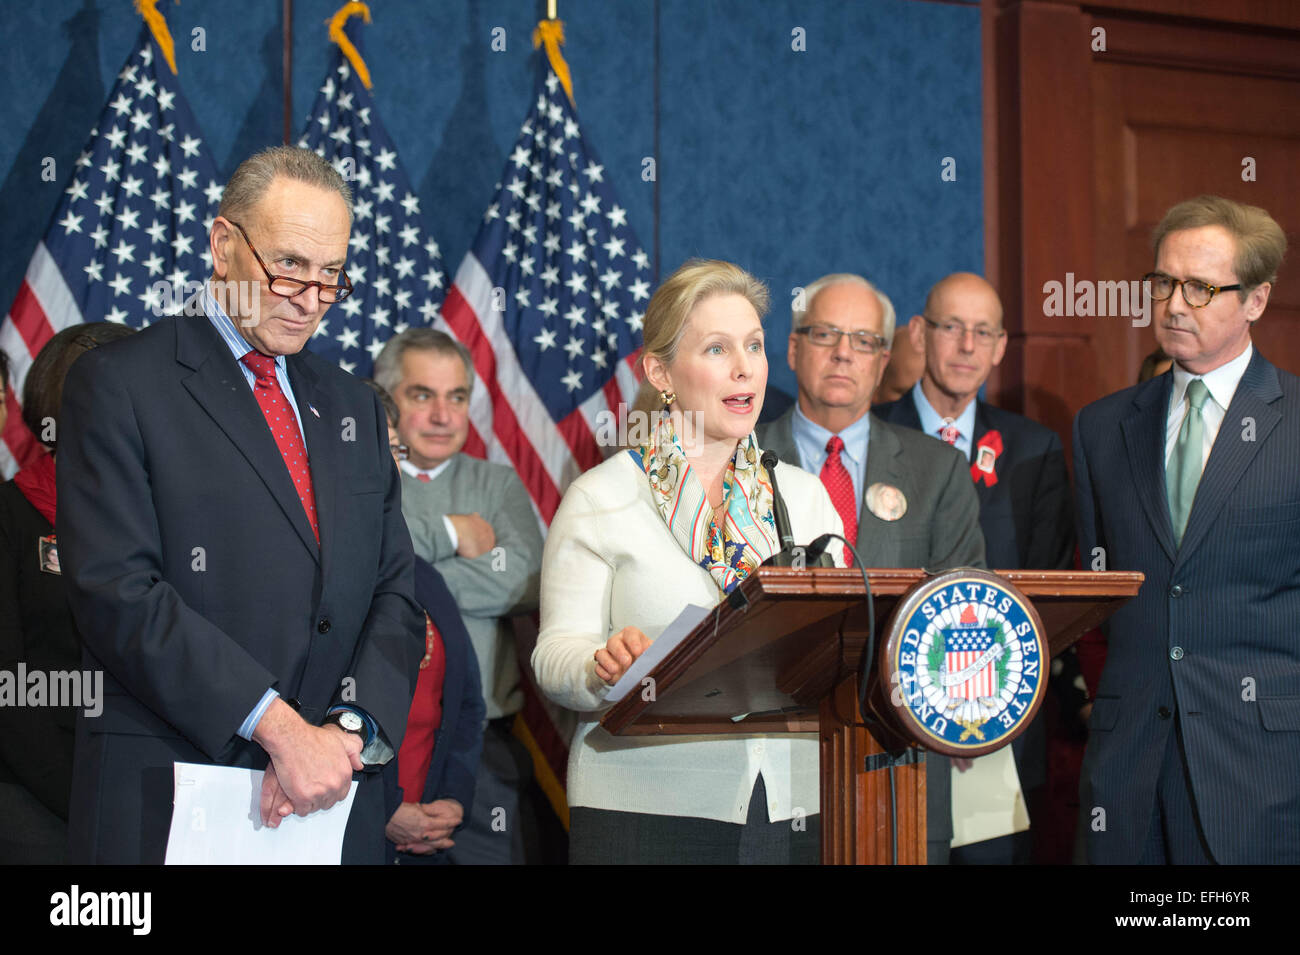 US Senator Senator Kirsten Gillibrand along with Senators Chuck Schumer and families of aviation victims launch - Stock Image